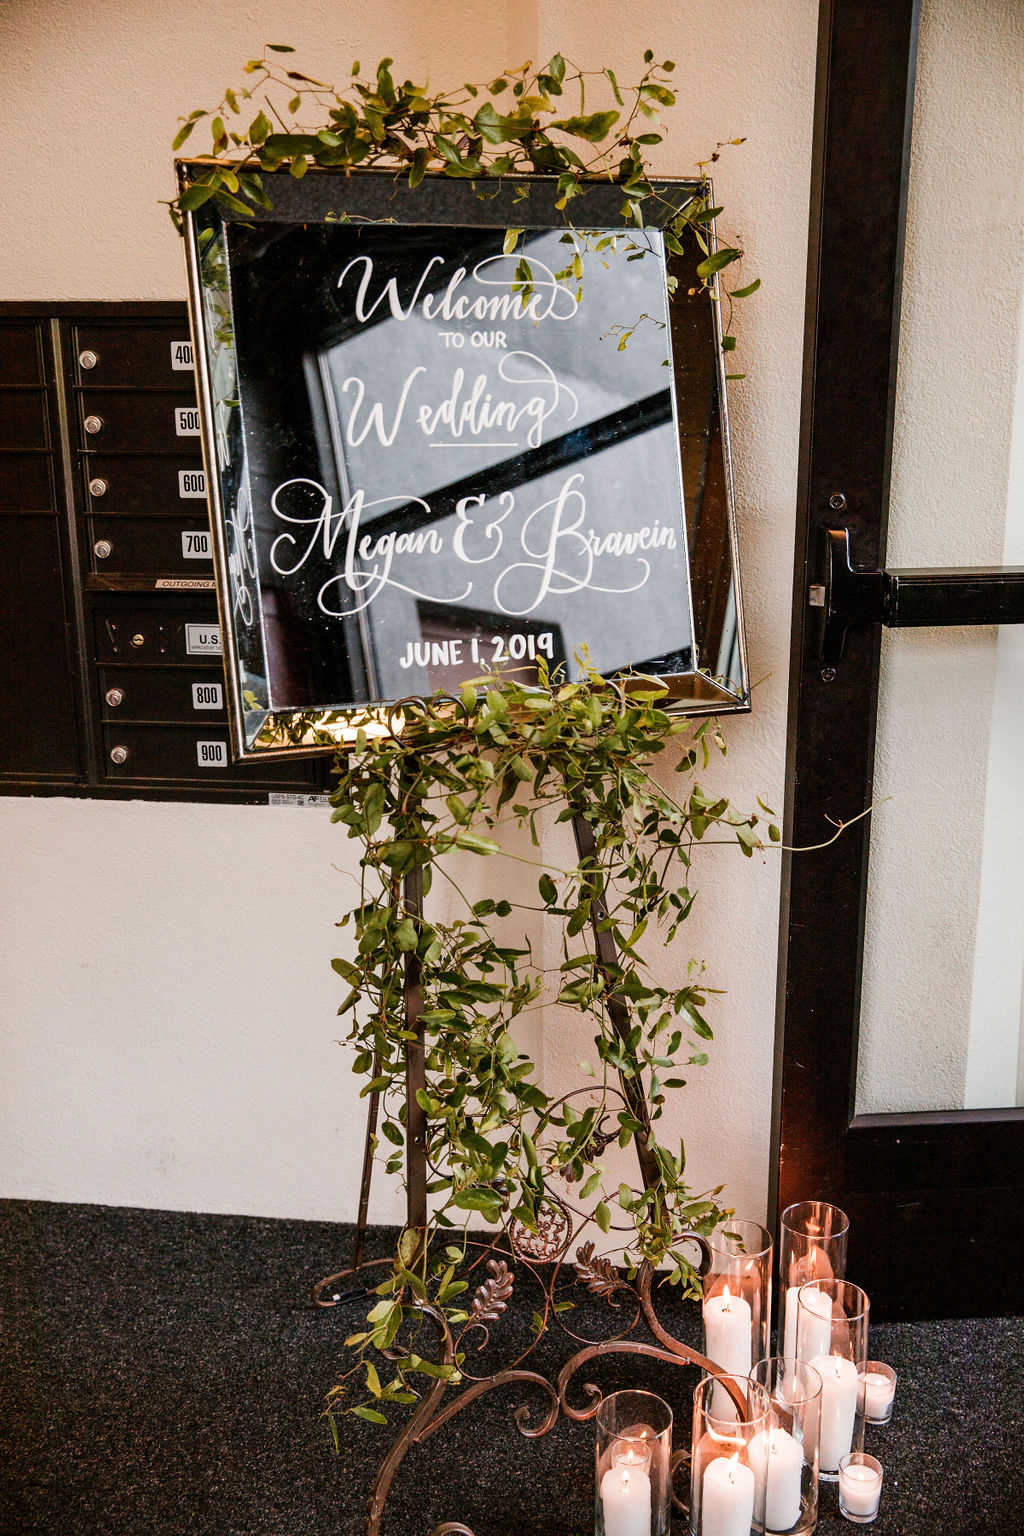 Wedding Welcome Sign: Bollywood Meets Traditional Wedding at The Bridge Building